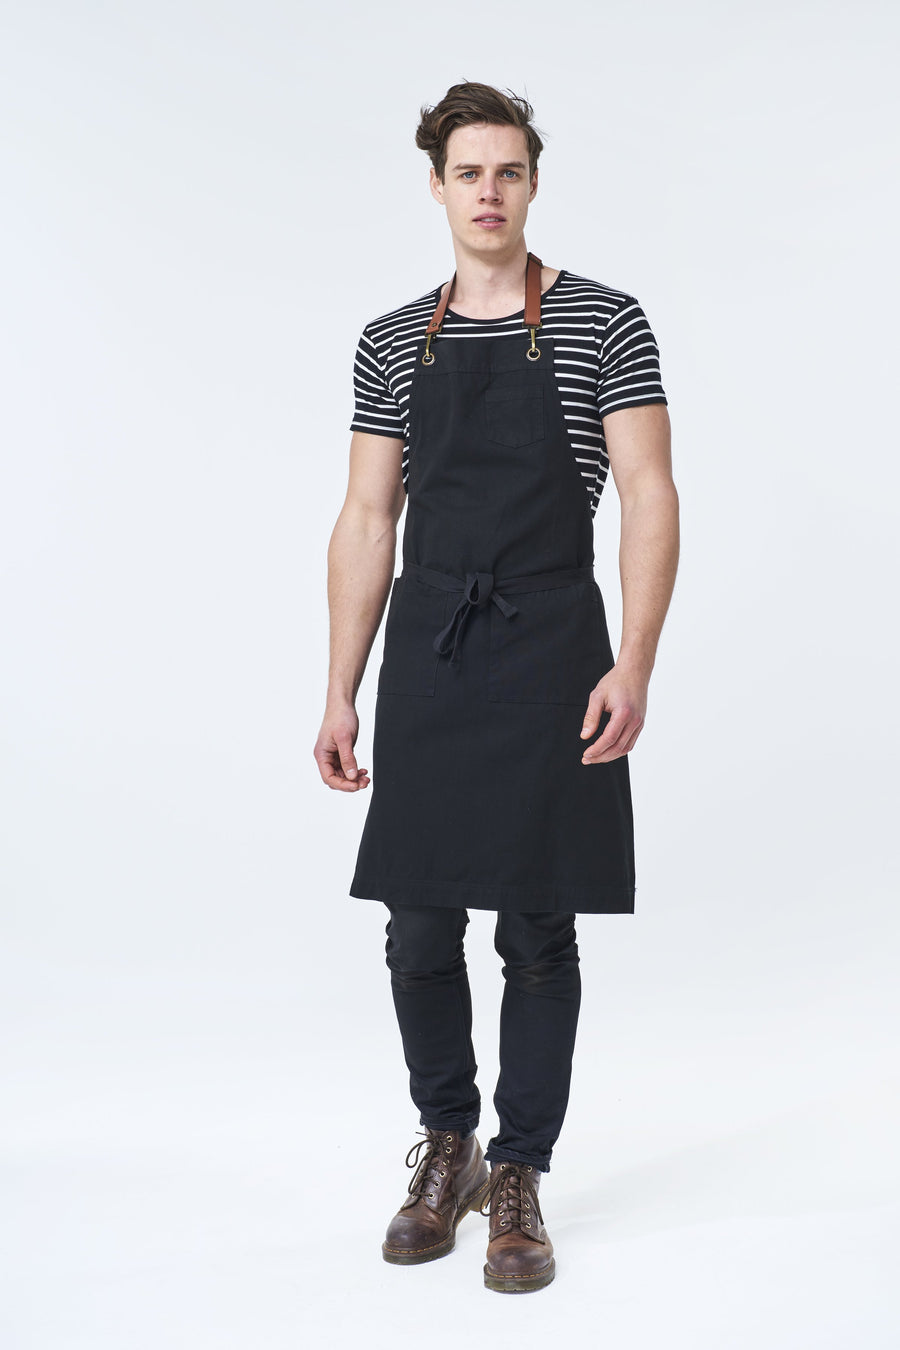 ORLANDO Apron with Leather neck strap - Black Canvas - Customized